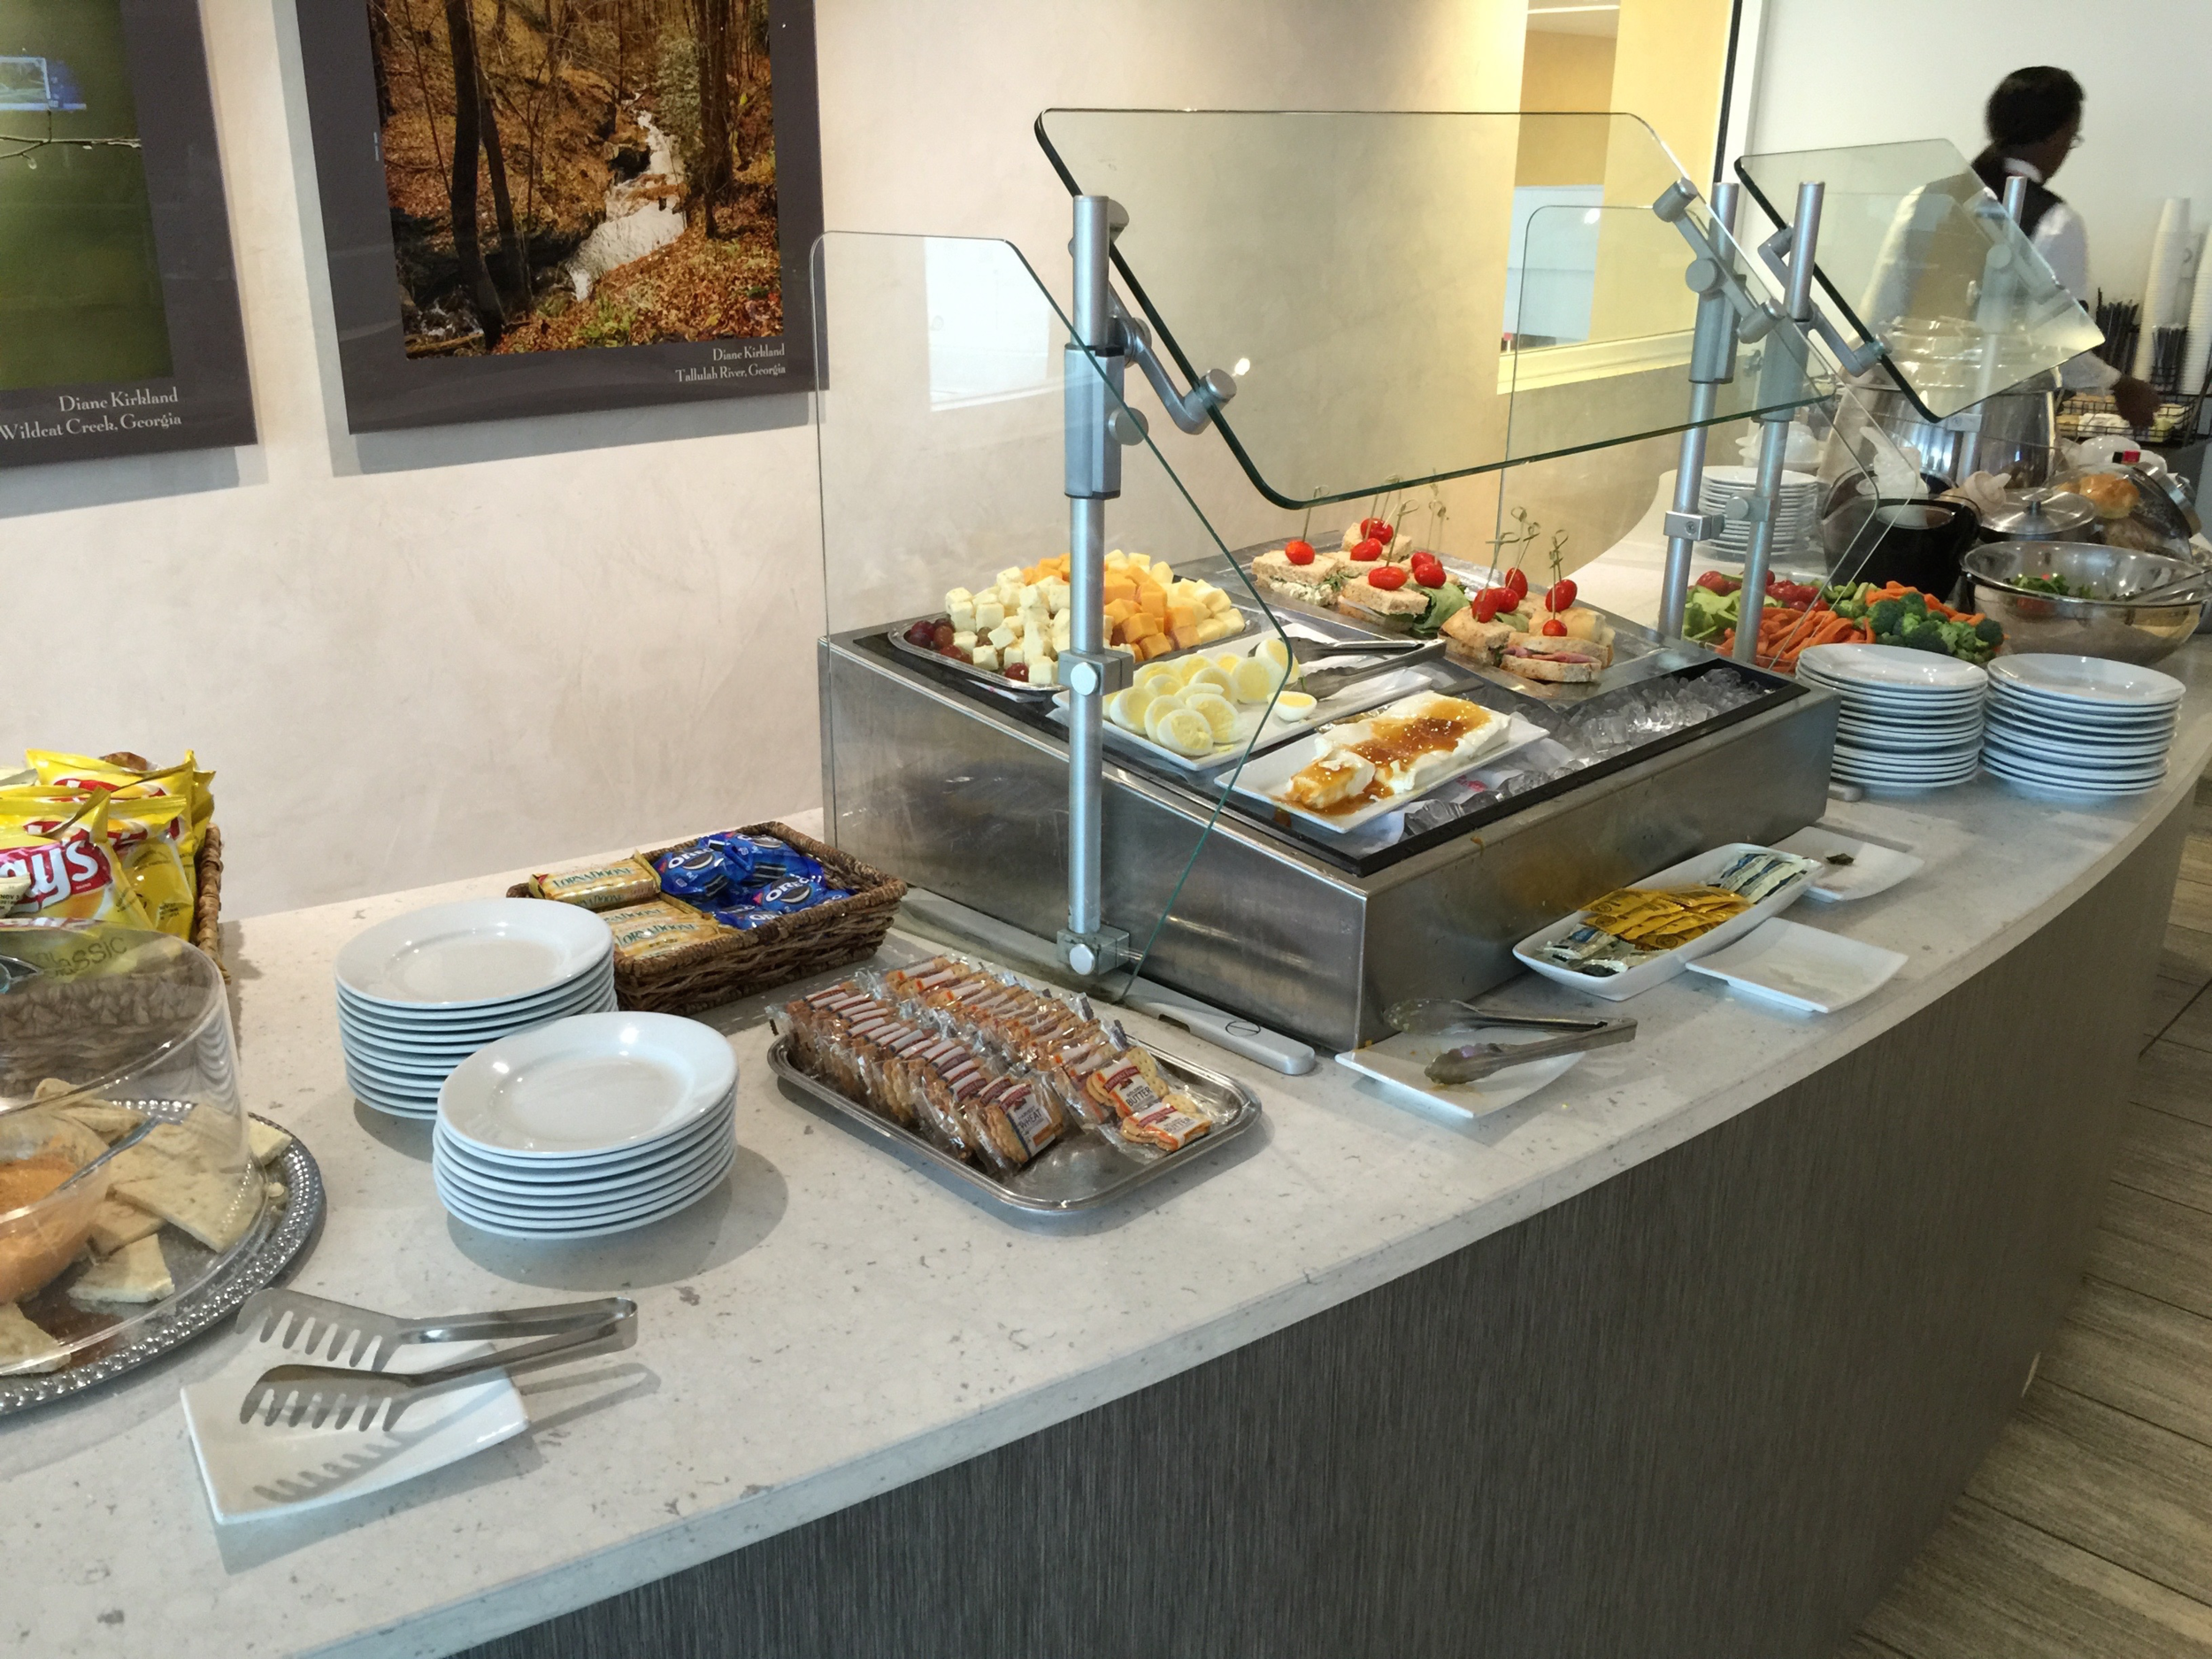 The buffet offered a variety of options